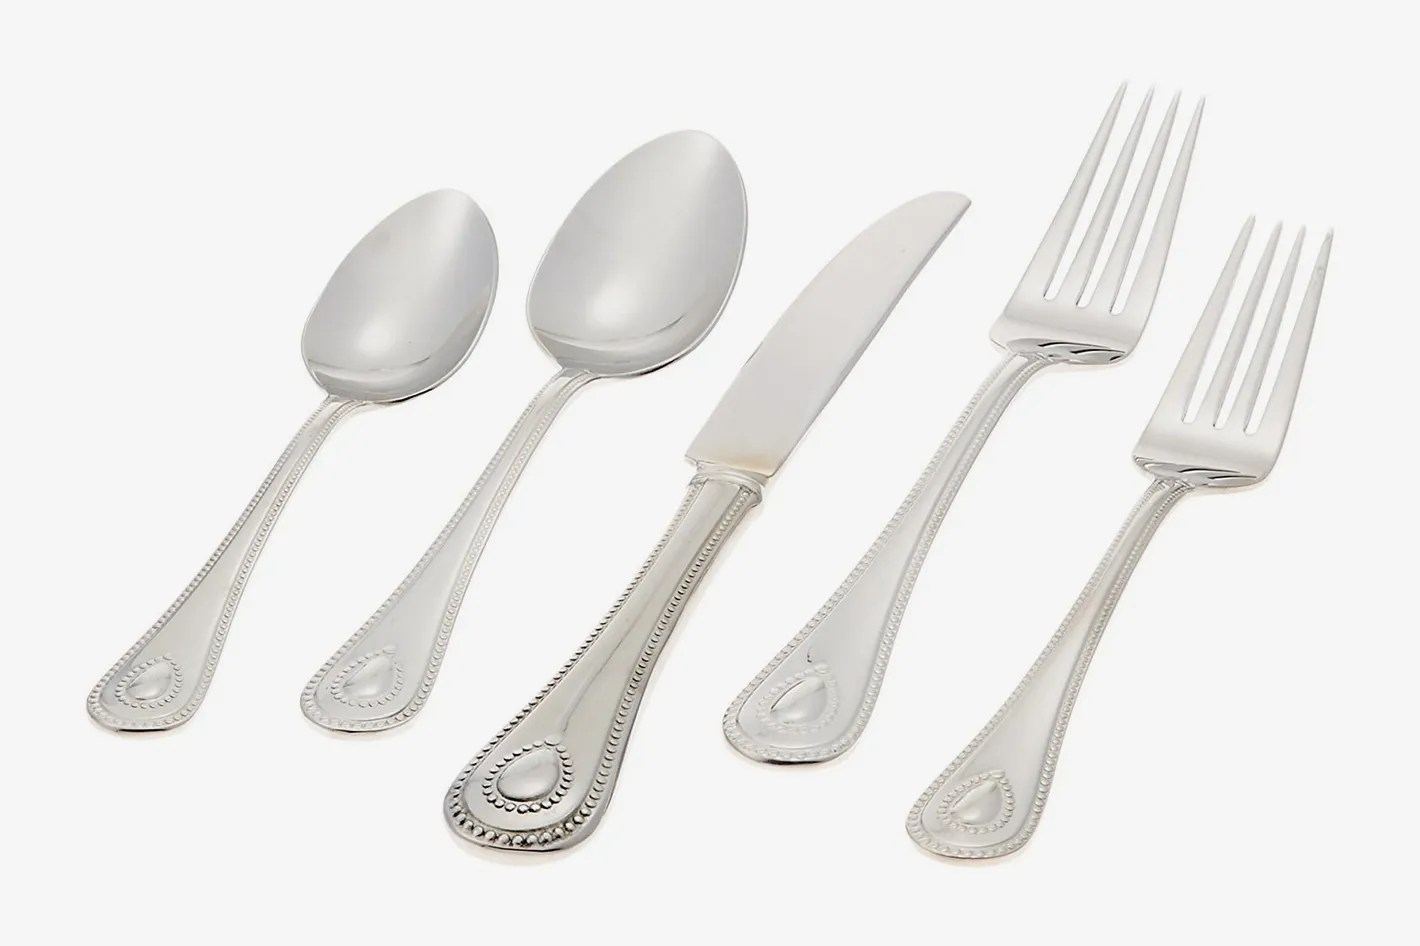 Best Deal On Silverware The Best Fancy Disposable Cutlery And Silverware On Amazon